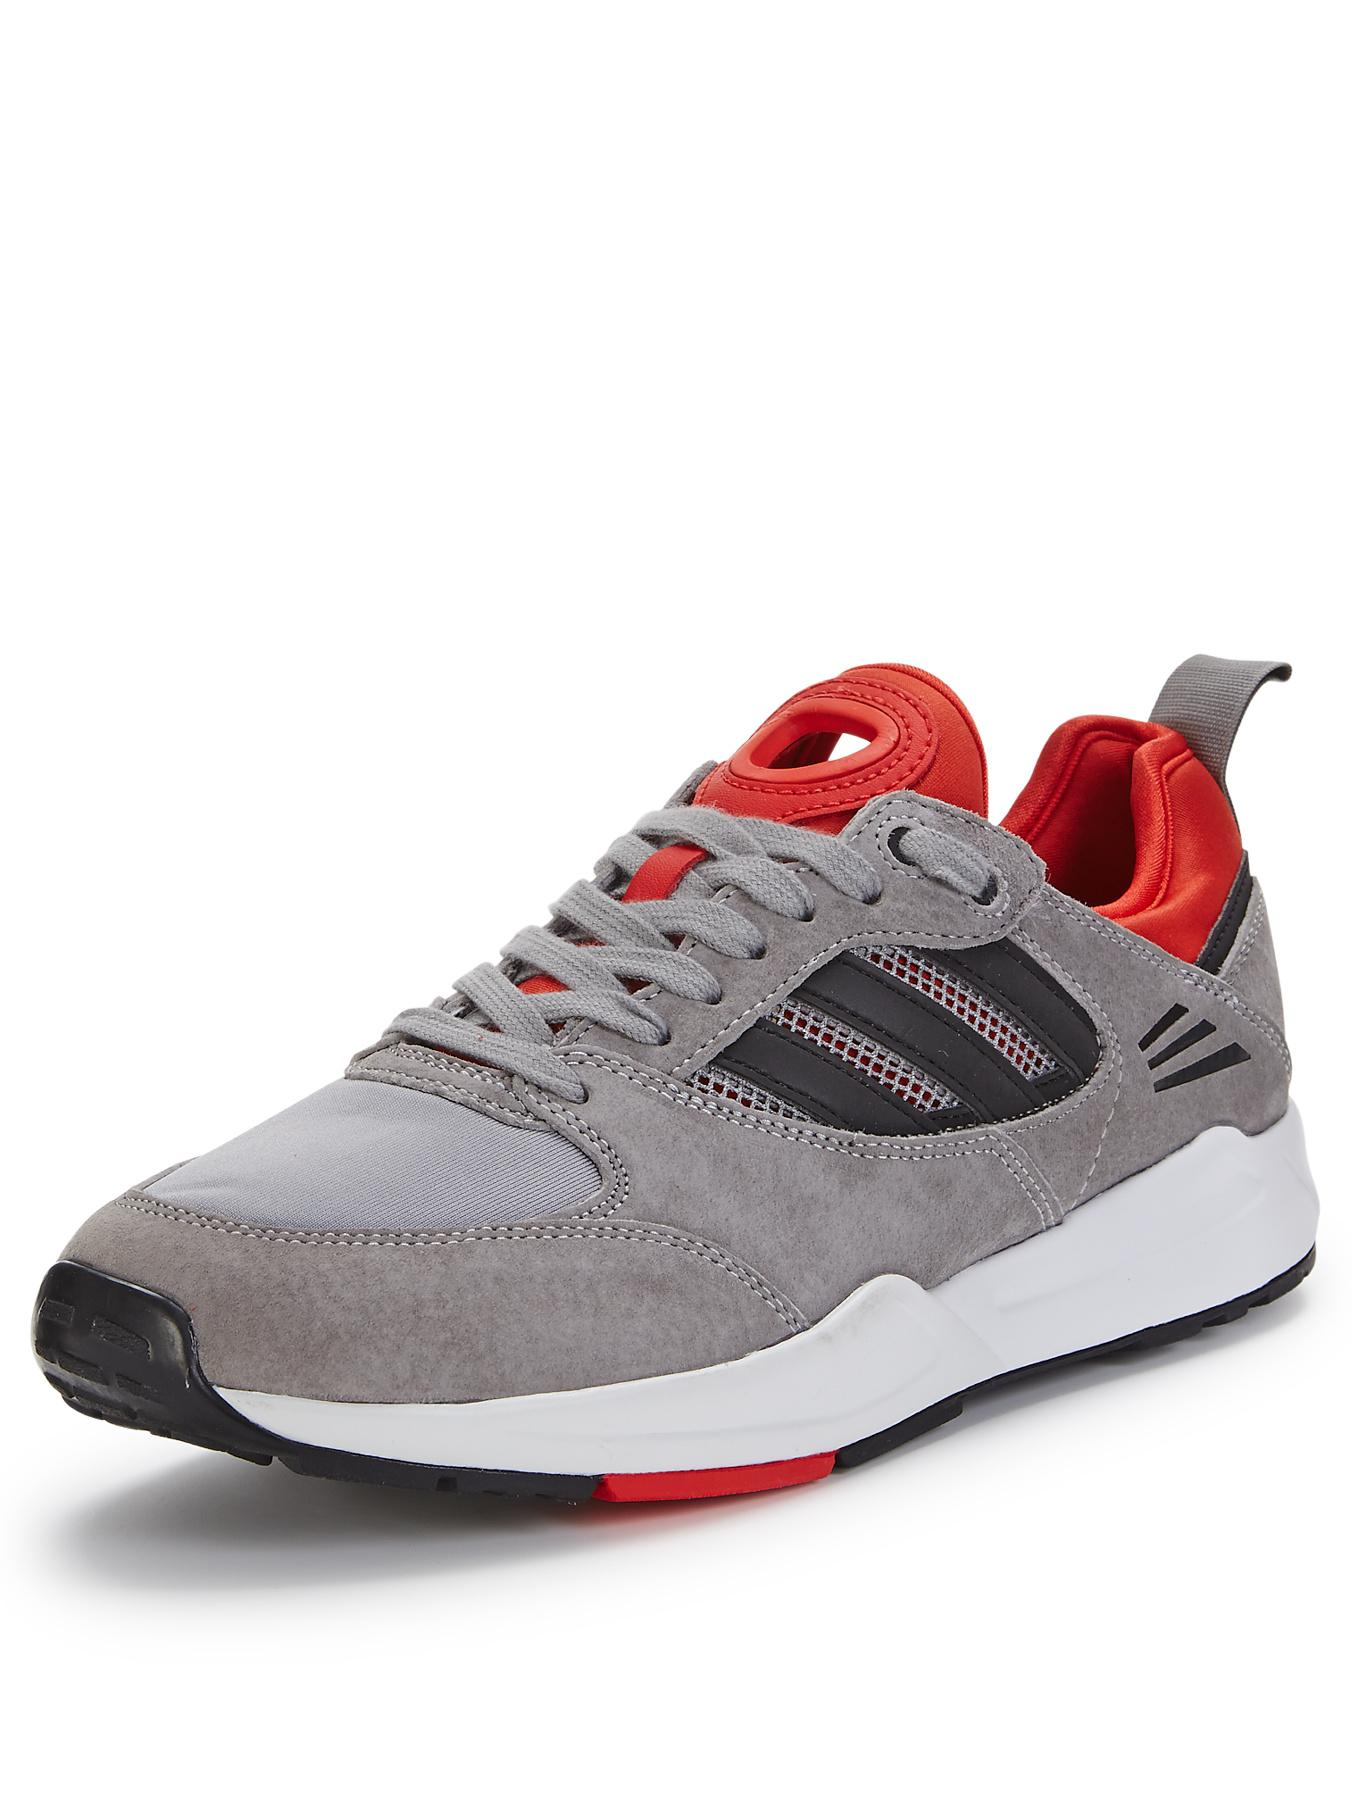 adidas Originals Tech Super Trainers - Grey, Grey